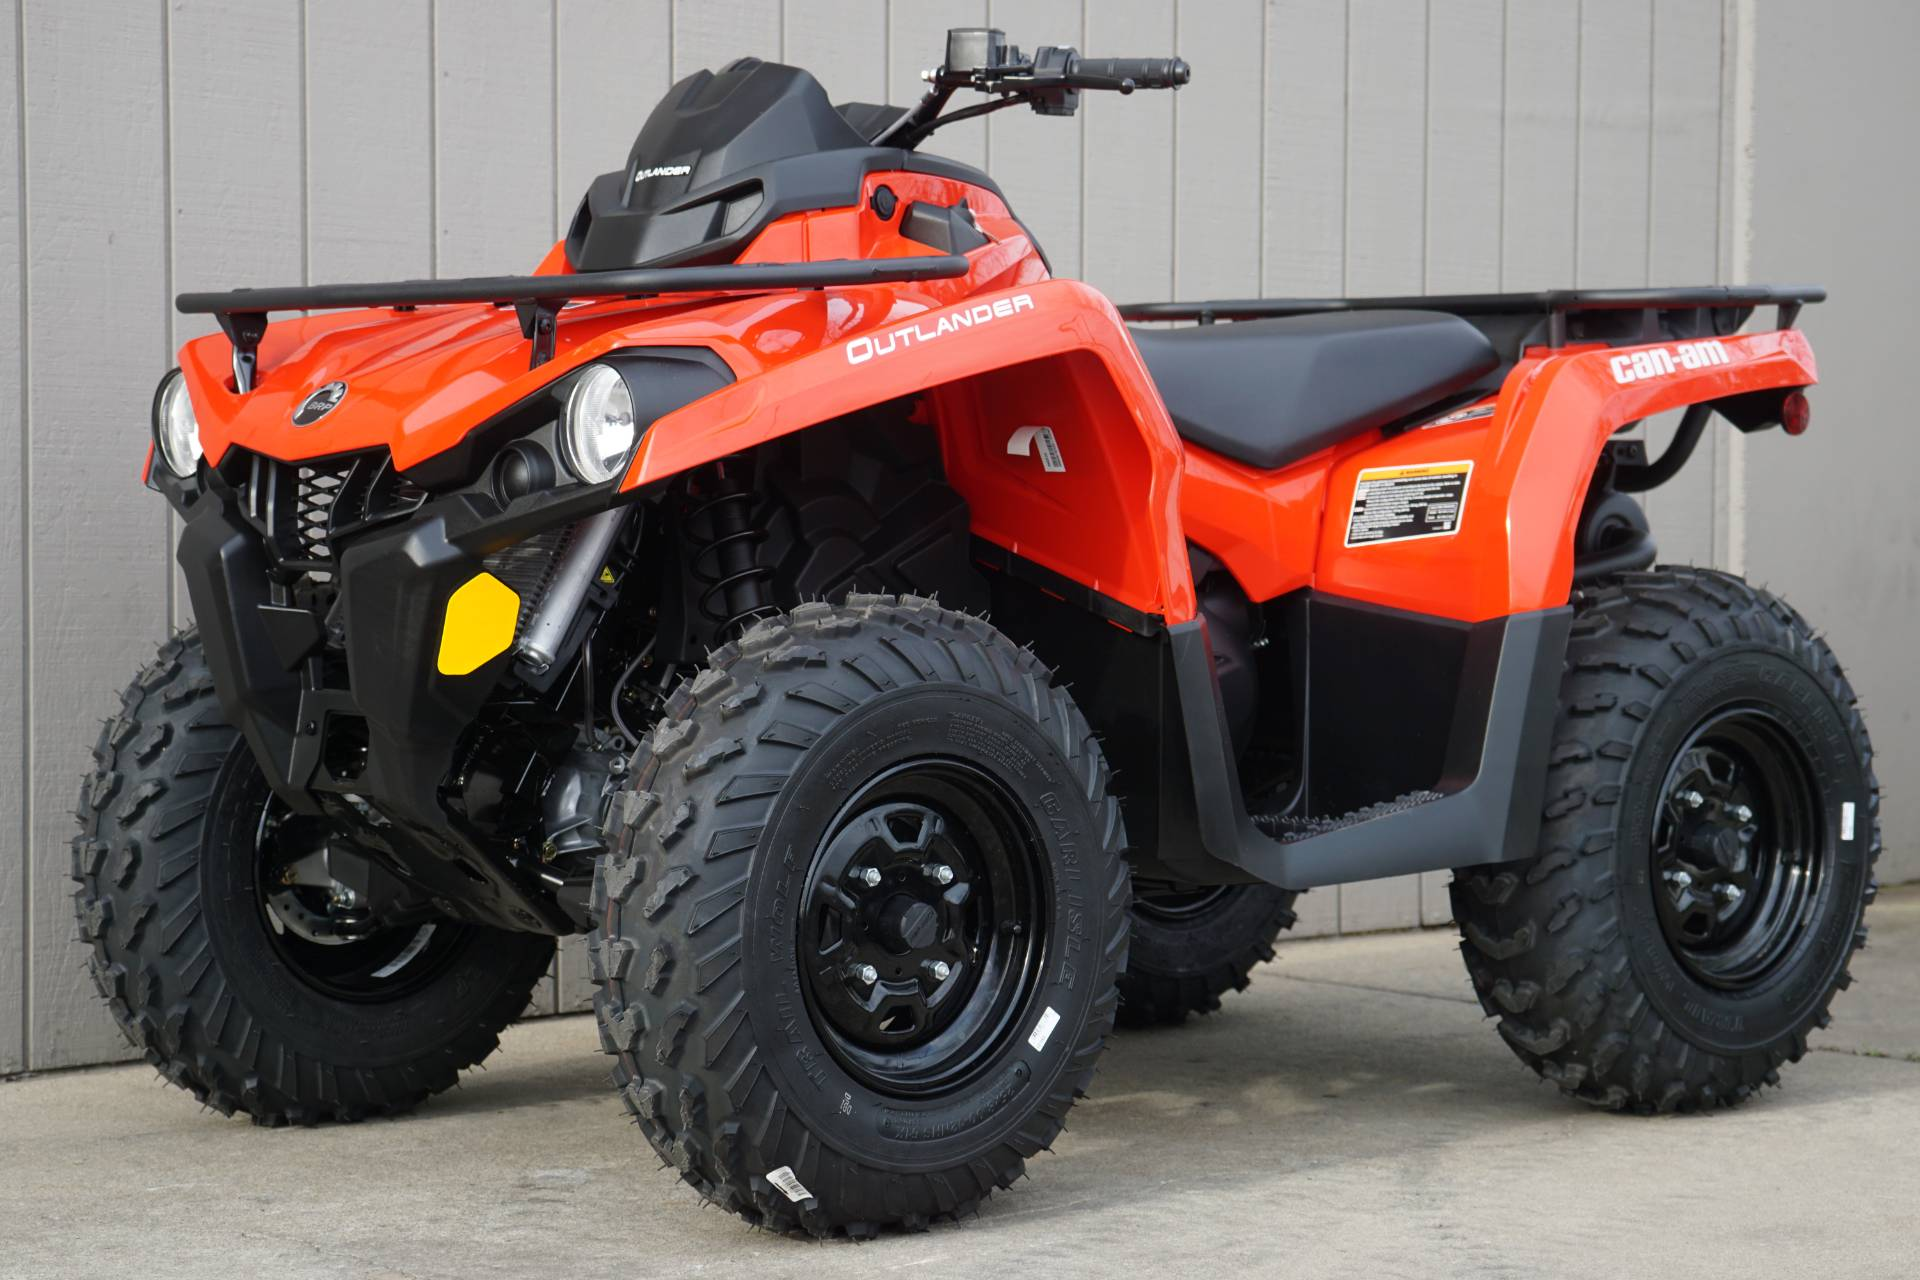 2019 Can-Am Outlander 450 for sale 146687